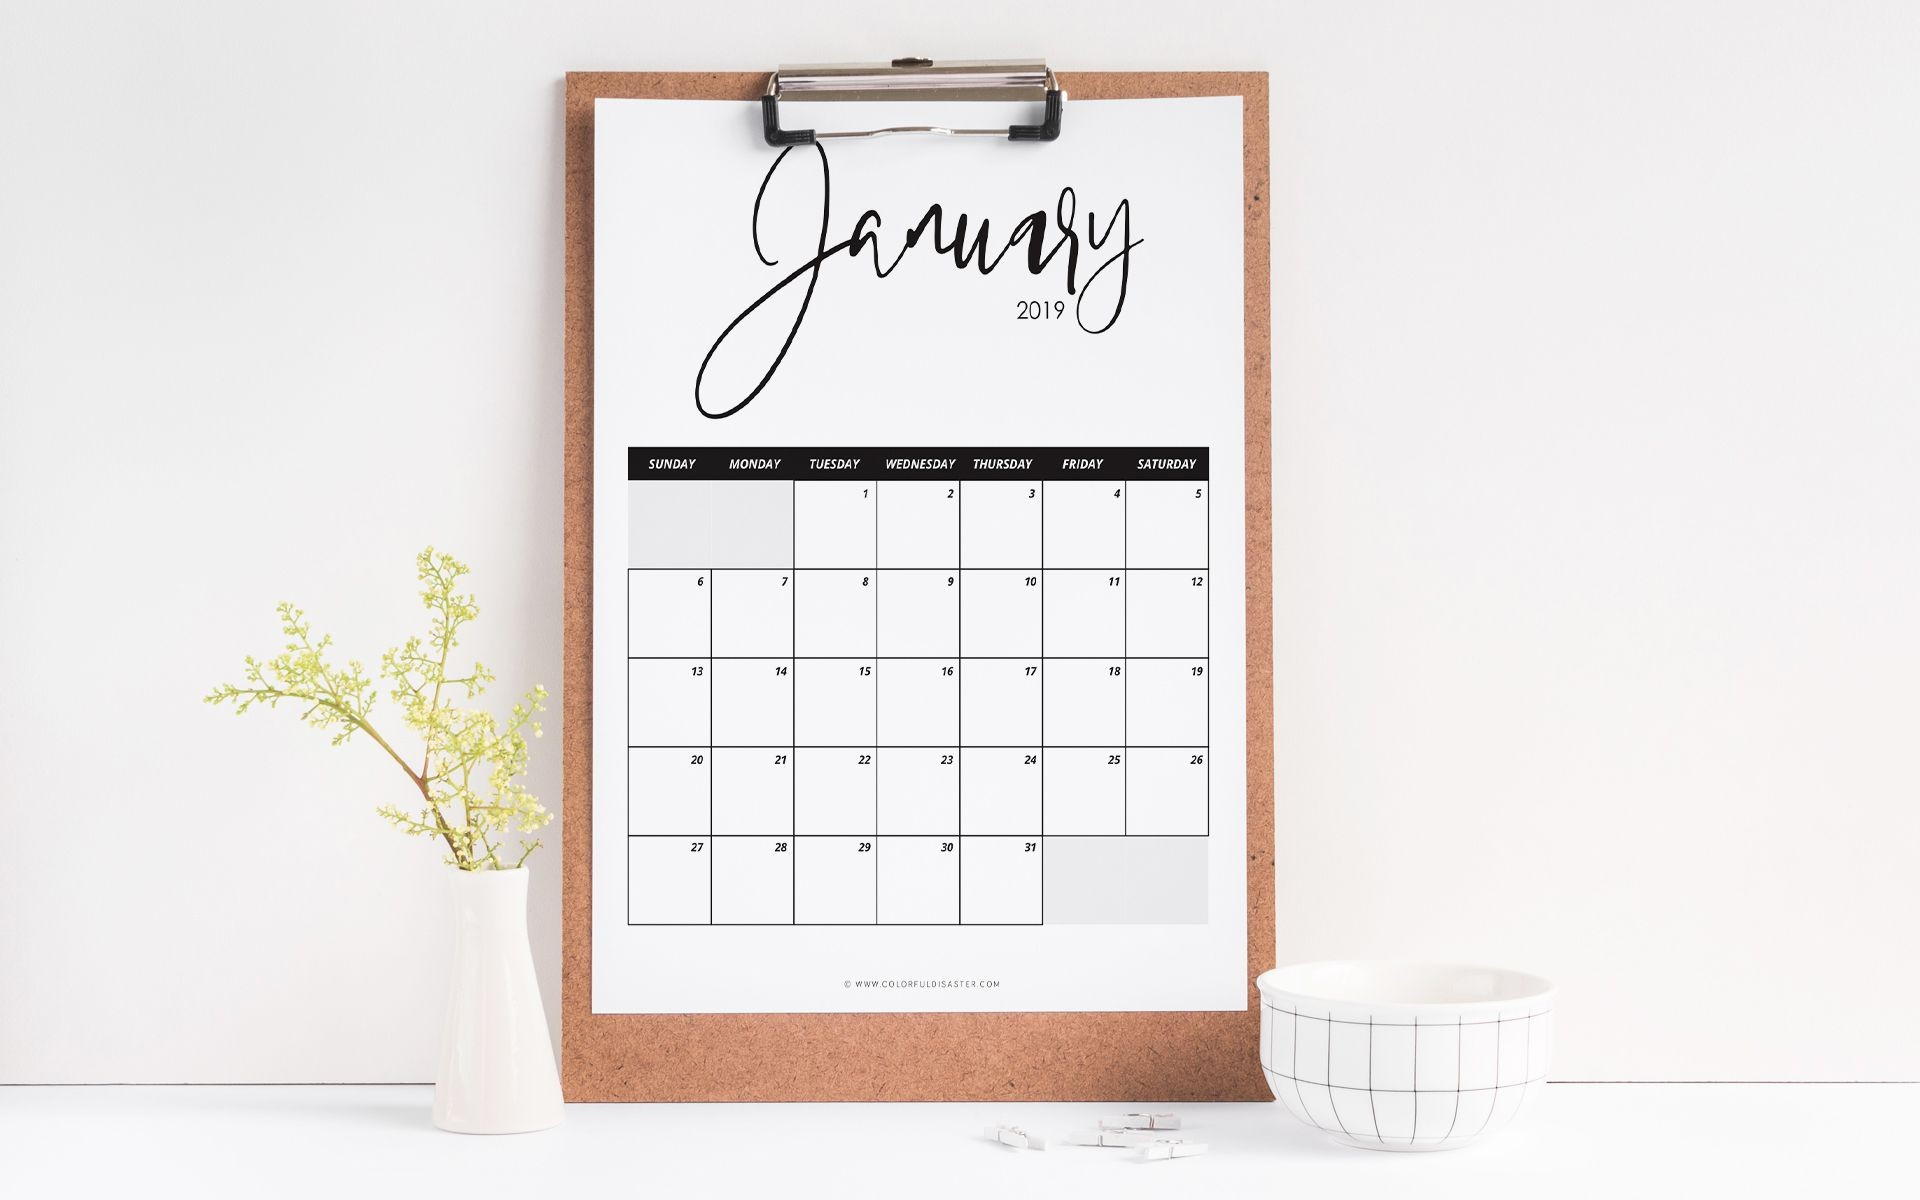 March 2019 Calendar Landscape Más Reciente 10 Stylish Free Printable Calendars for 2019 Of March 2019 Calendar Landscape Más Recientemente Liberado December 2019 Calendar